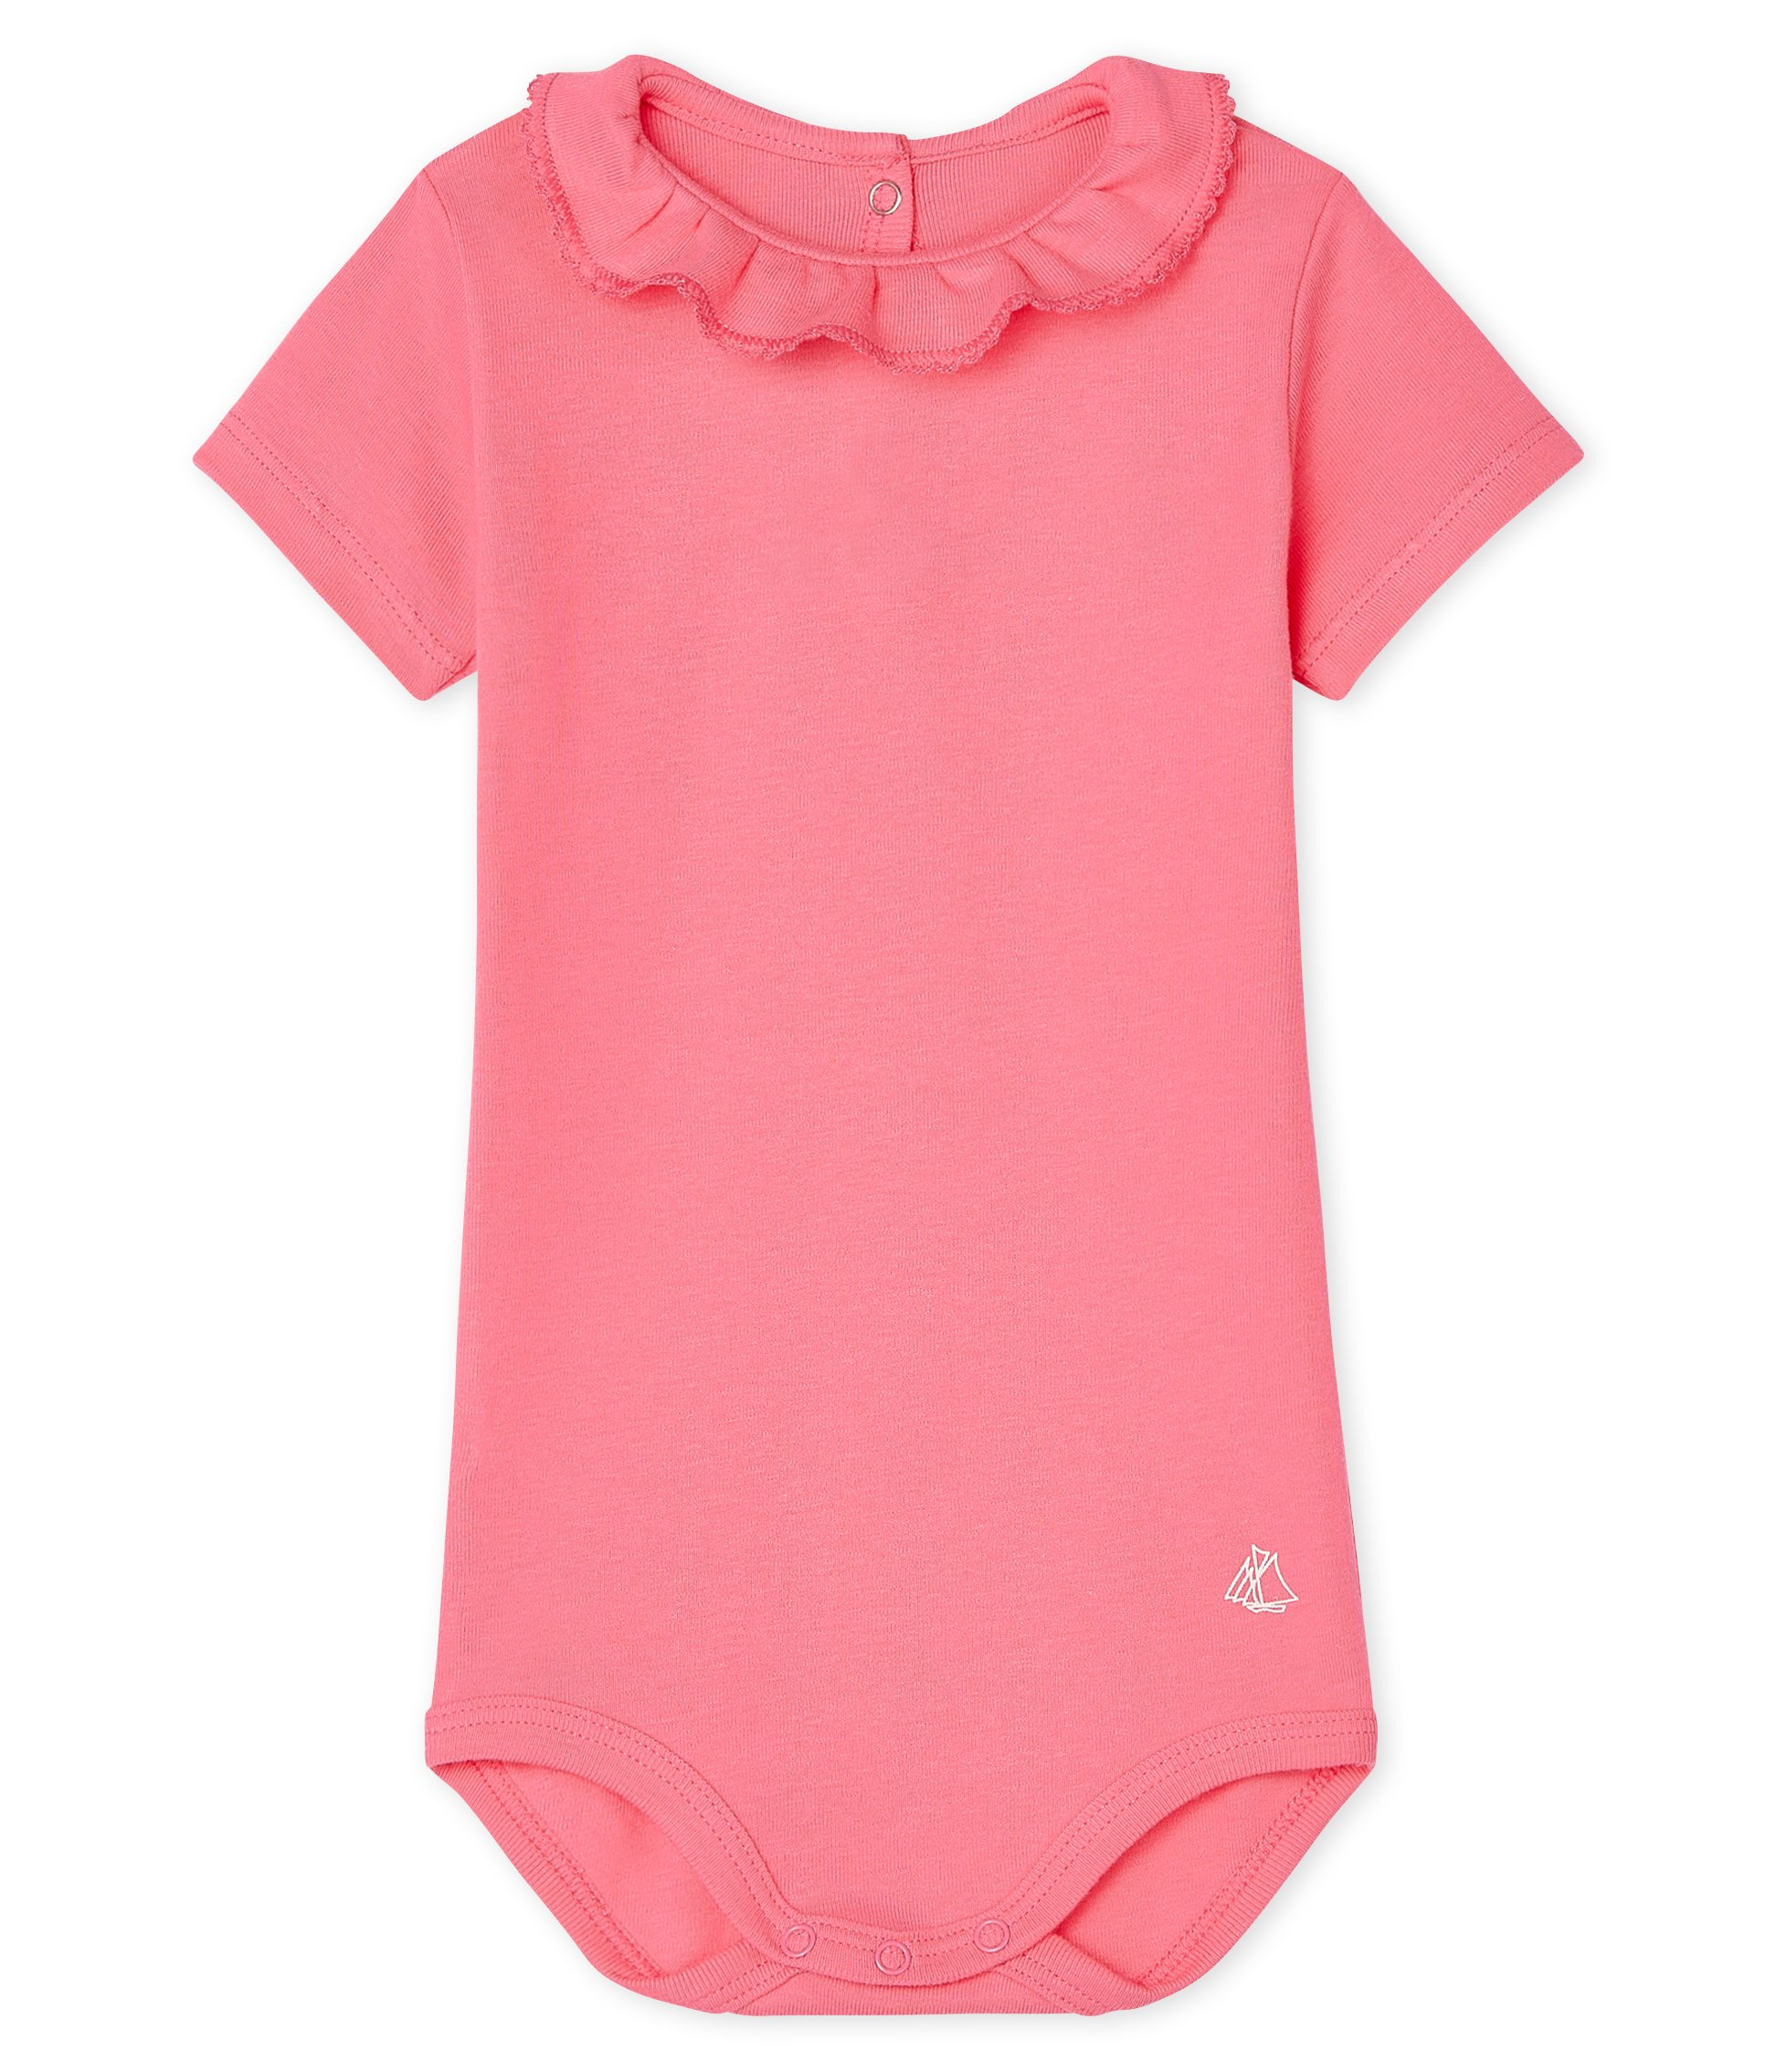 Baby Girls' Dress with Ruff